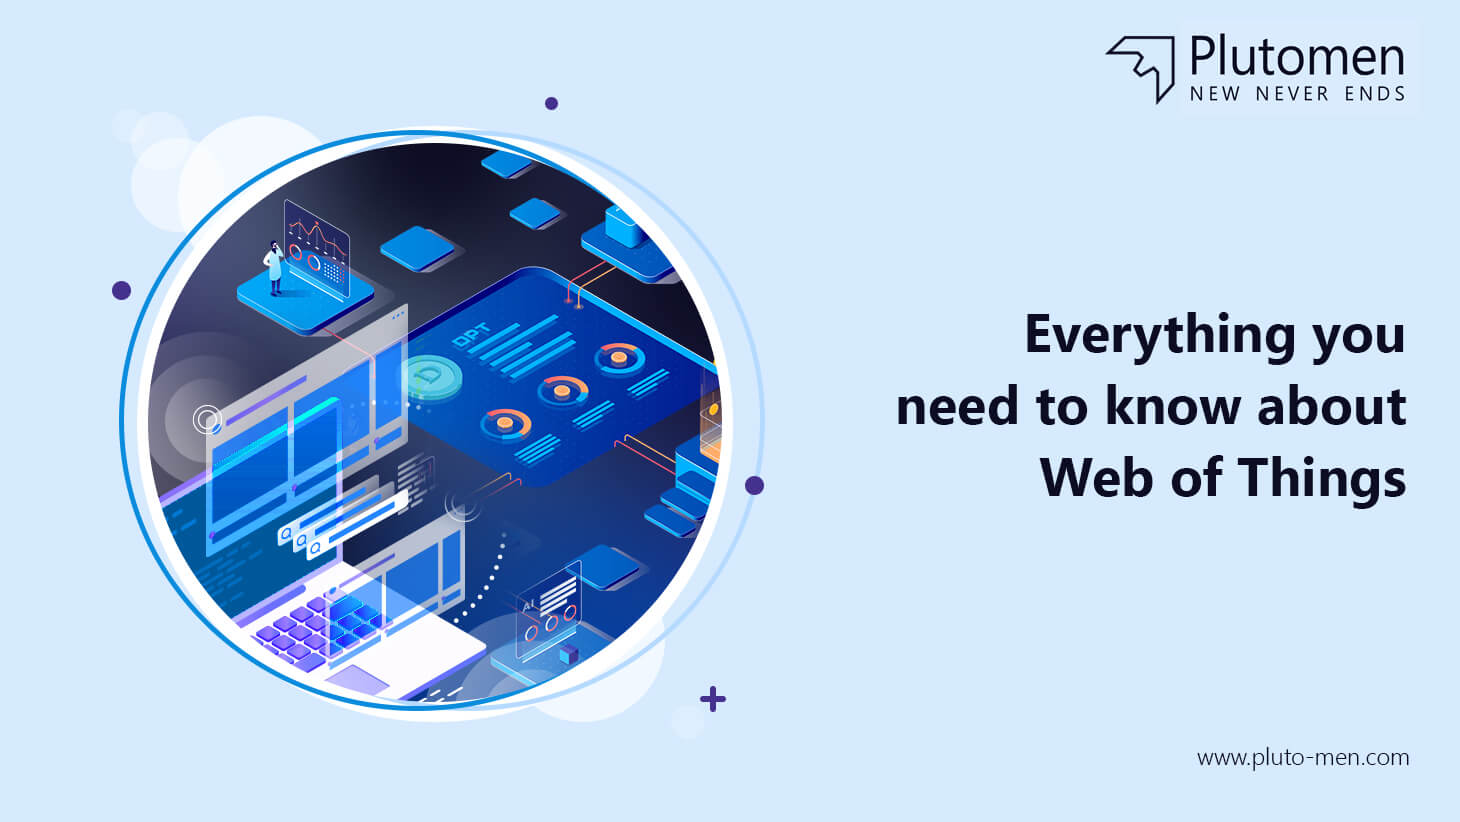 Everything you need to know about Web of Things